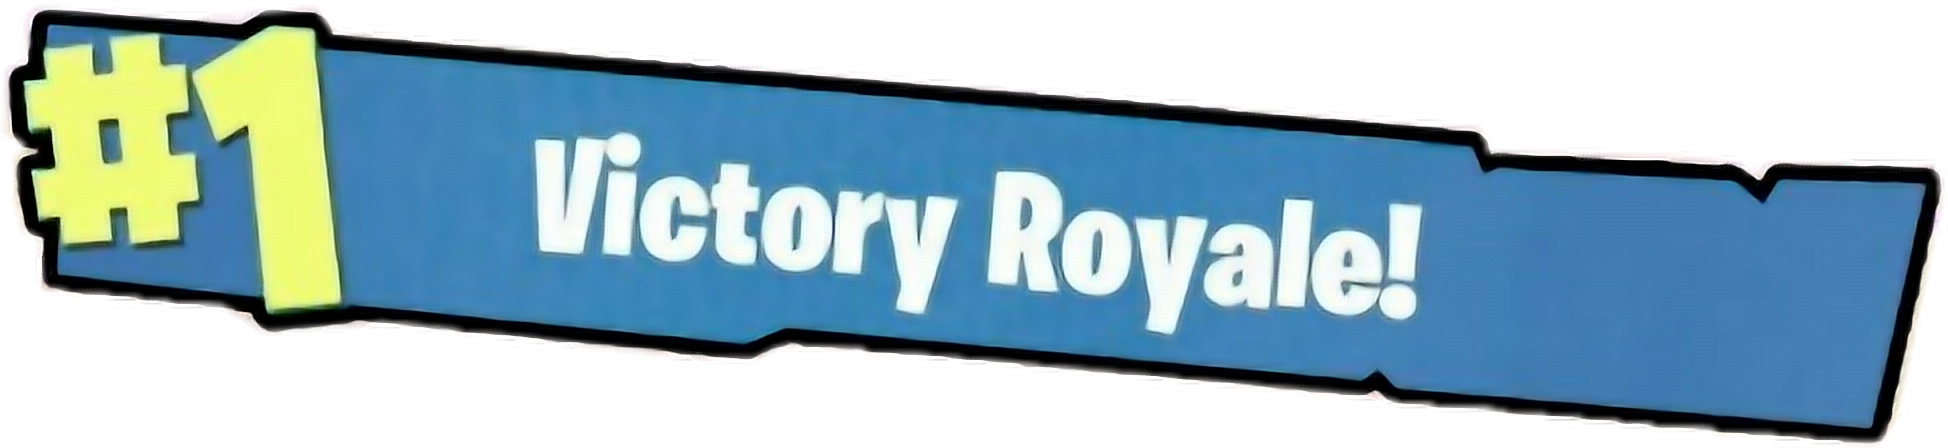 Victory Royale Signage Graphics PNG Clipart #47387.